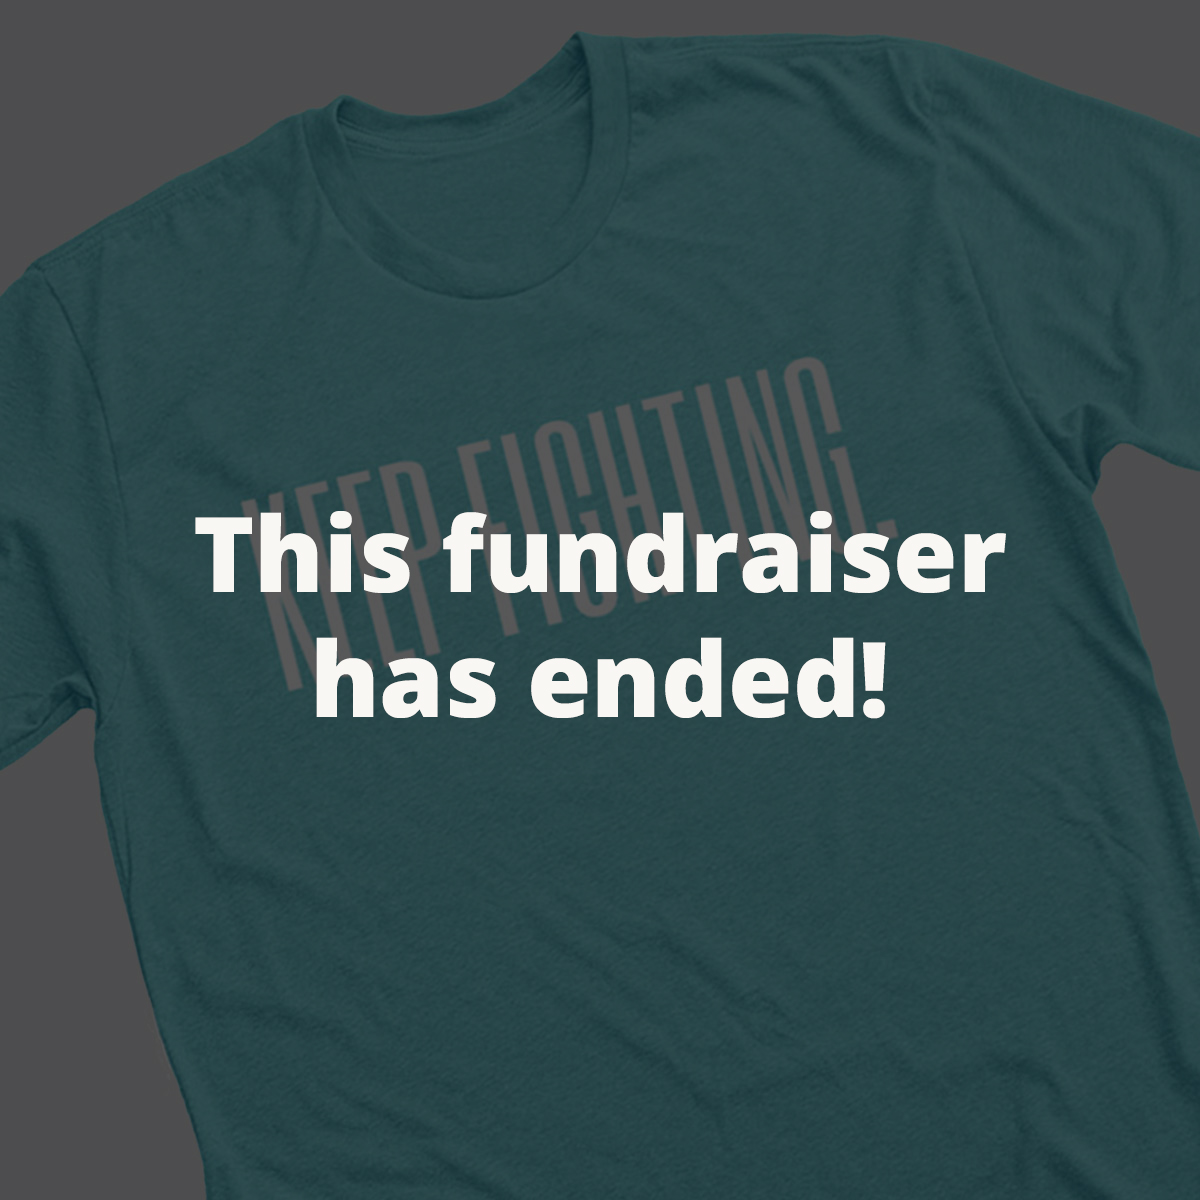 T-Shirt Campaign - Multiple colors and sizes available (kids sizes too!) Thank you, Taylor!